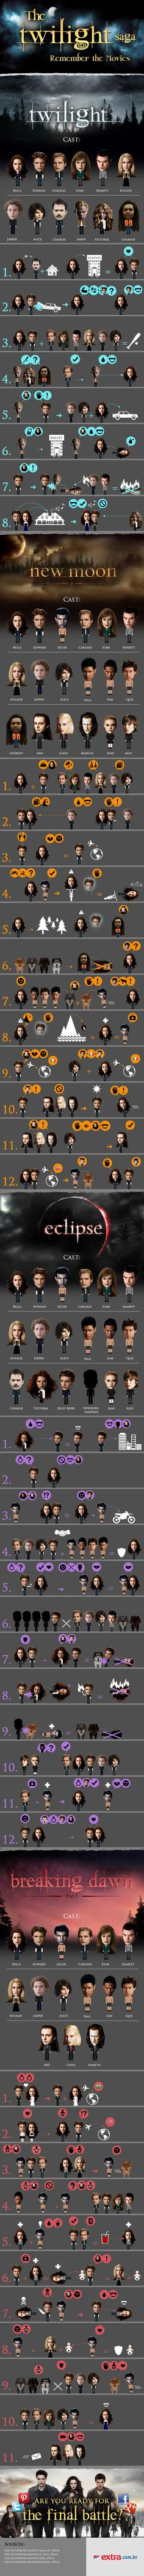 The Twilight Saga Explained [INFOGRAPHIC]